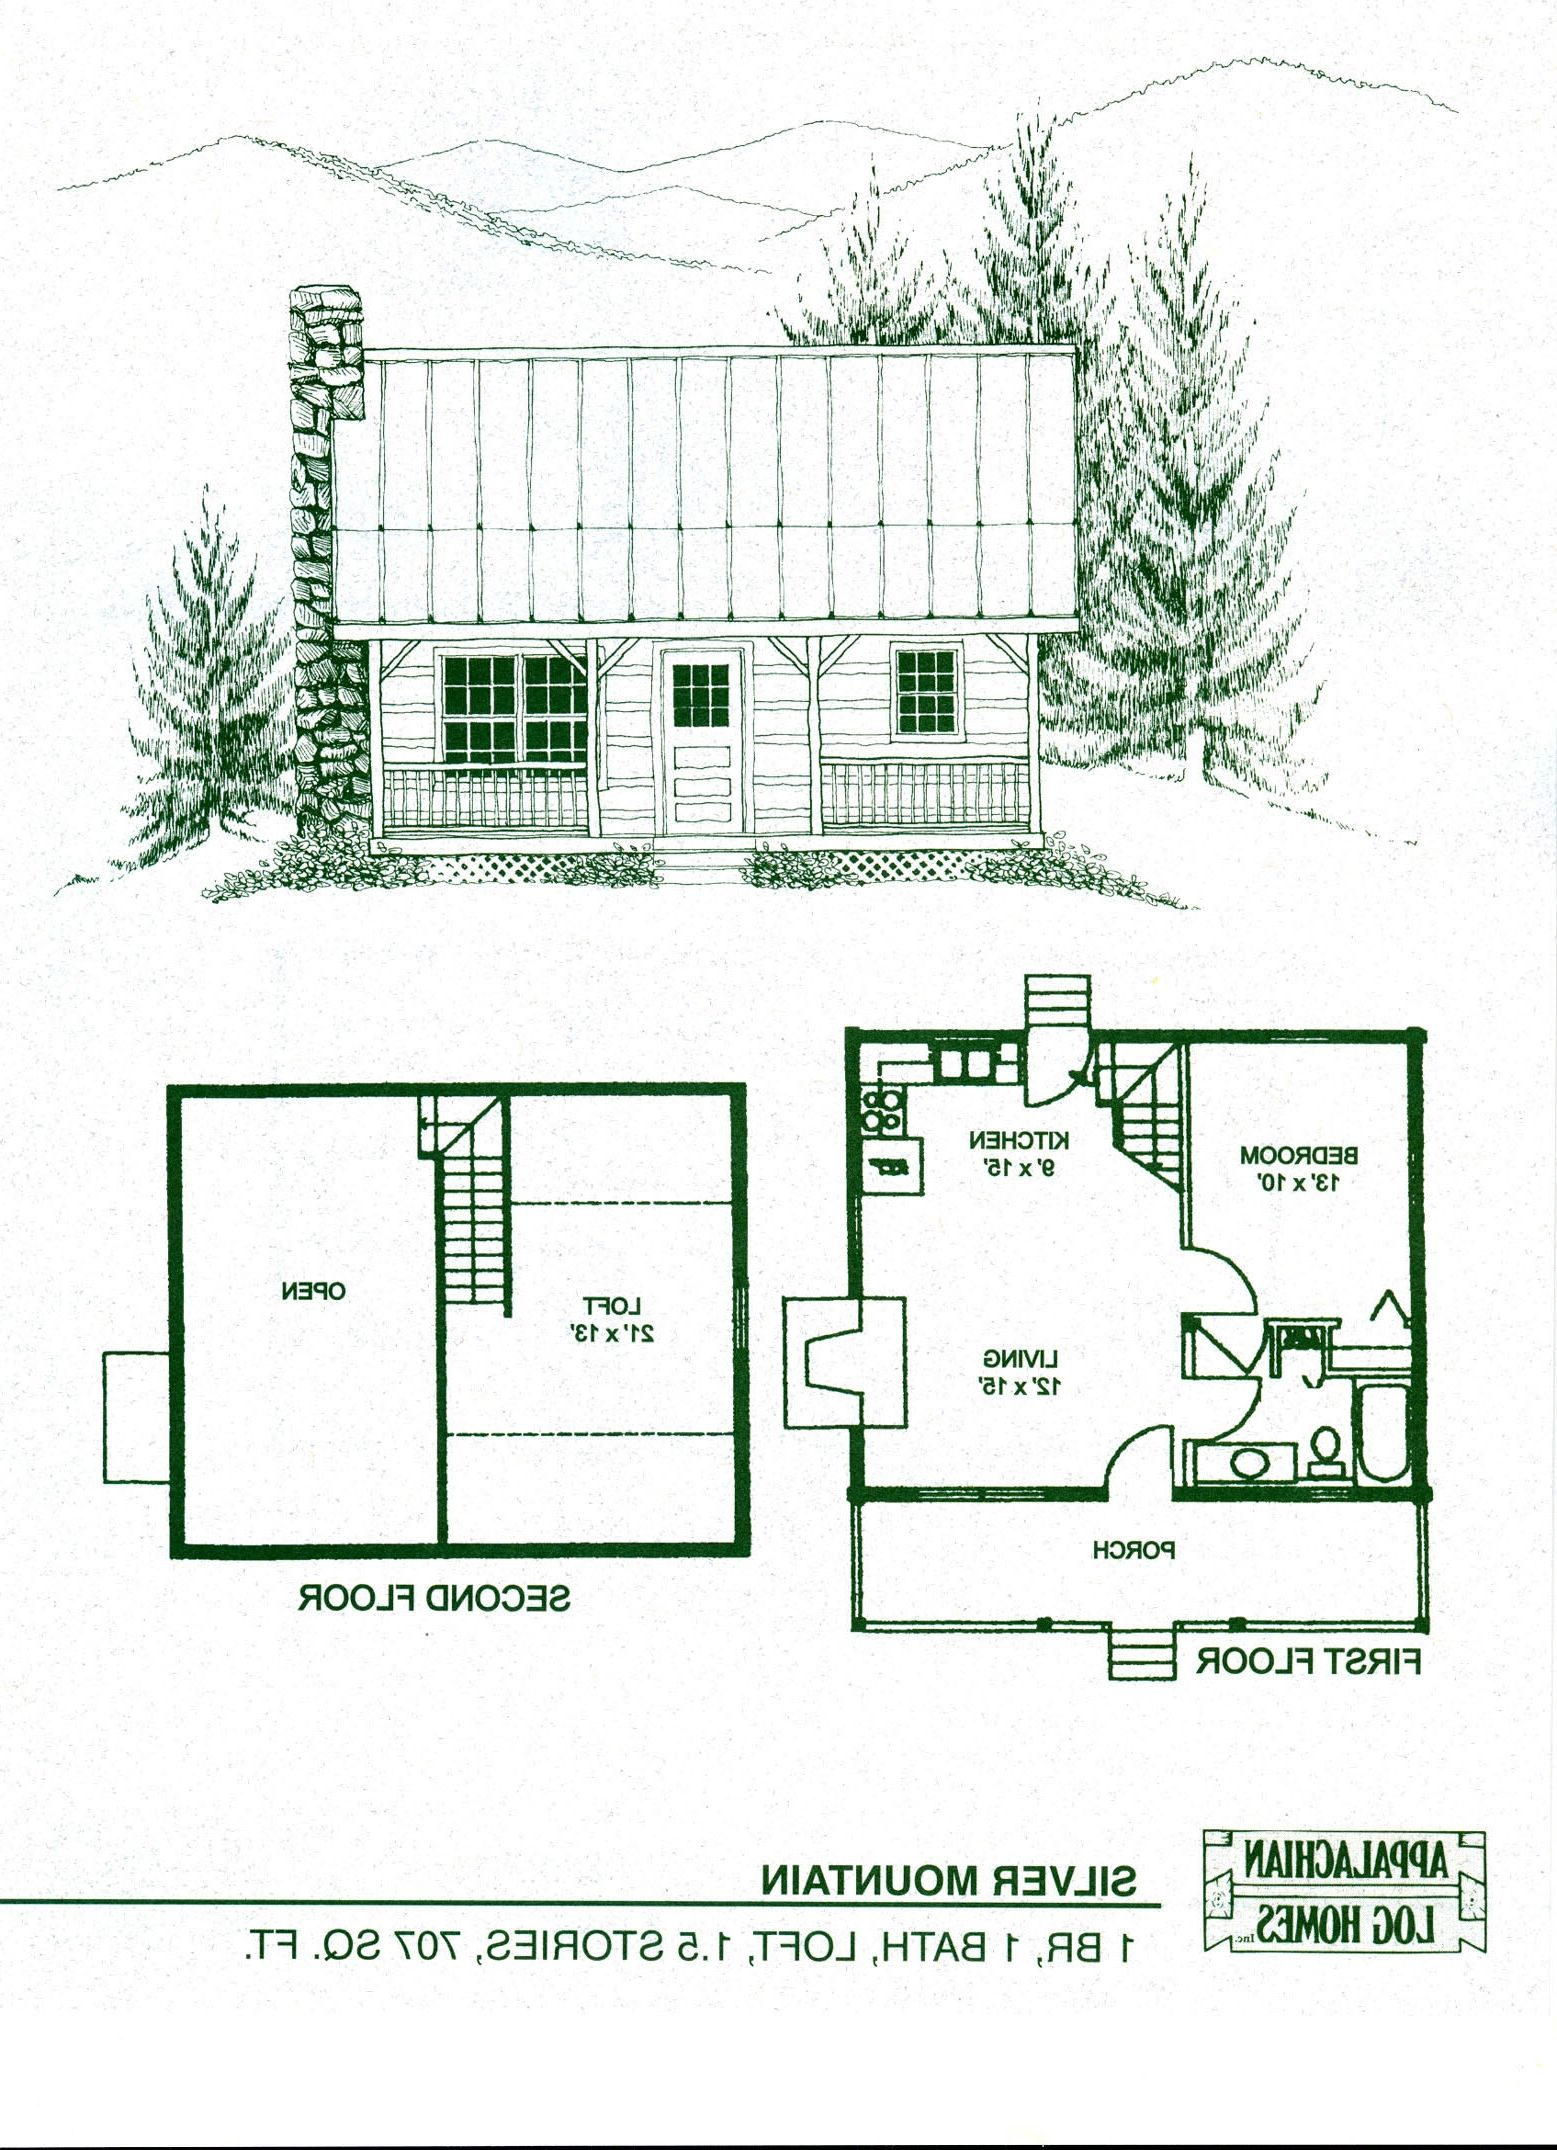 10 awesome cottage house plans for 2019 cabin plans cabin house rh pinterest com house plans for small houses in south africa house plans for small beach cottages